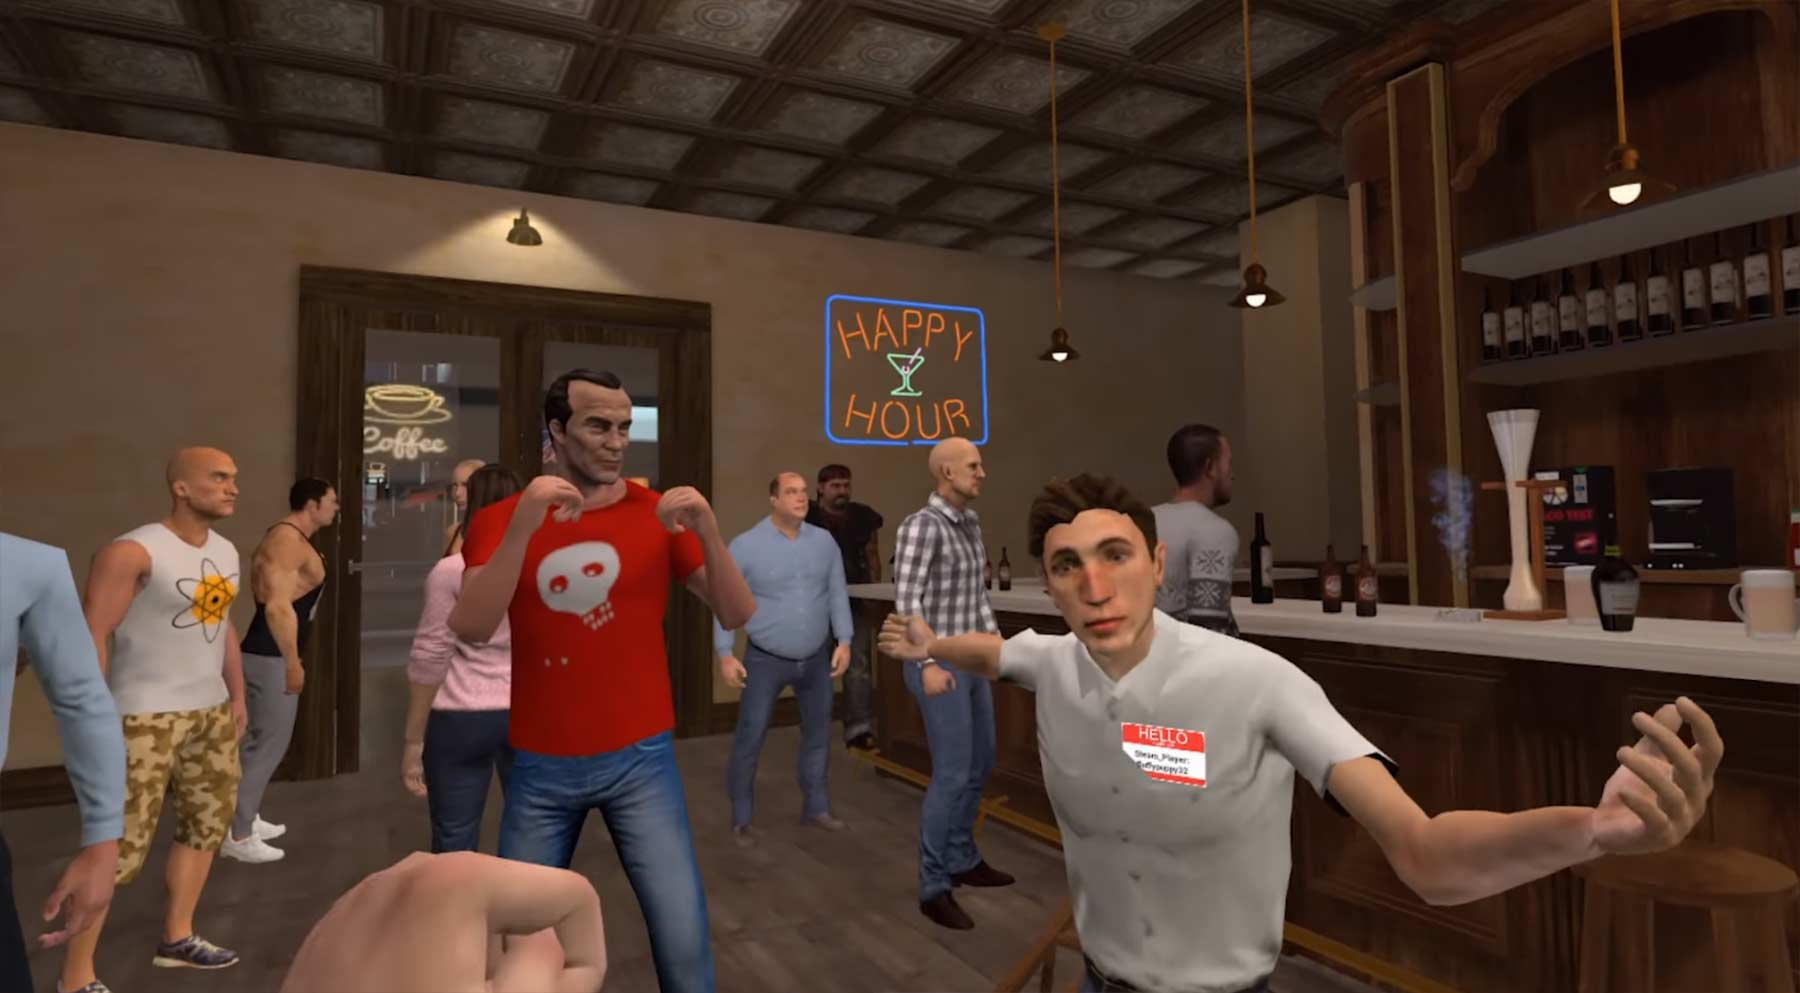 Endlich: Virtuelle Kneipenschlägereien drunkn-bar-fight-VR-game